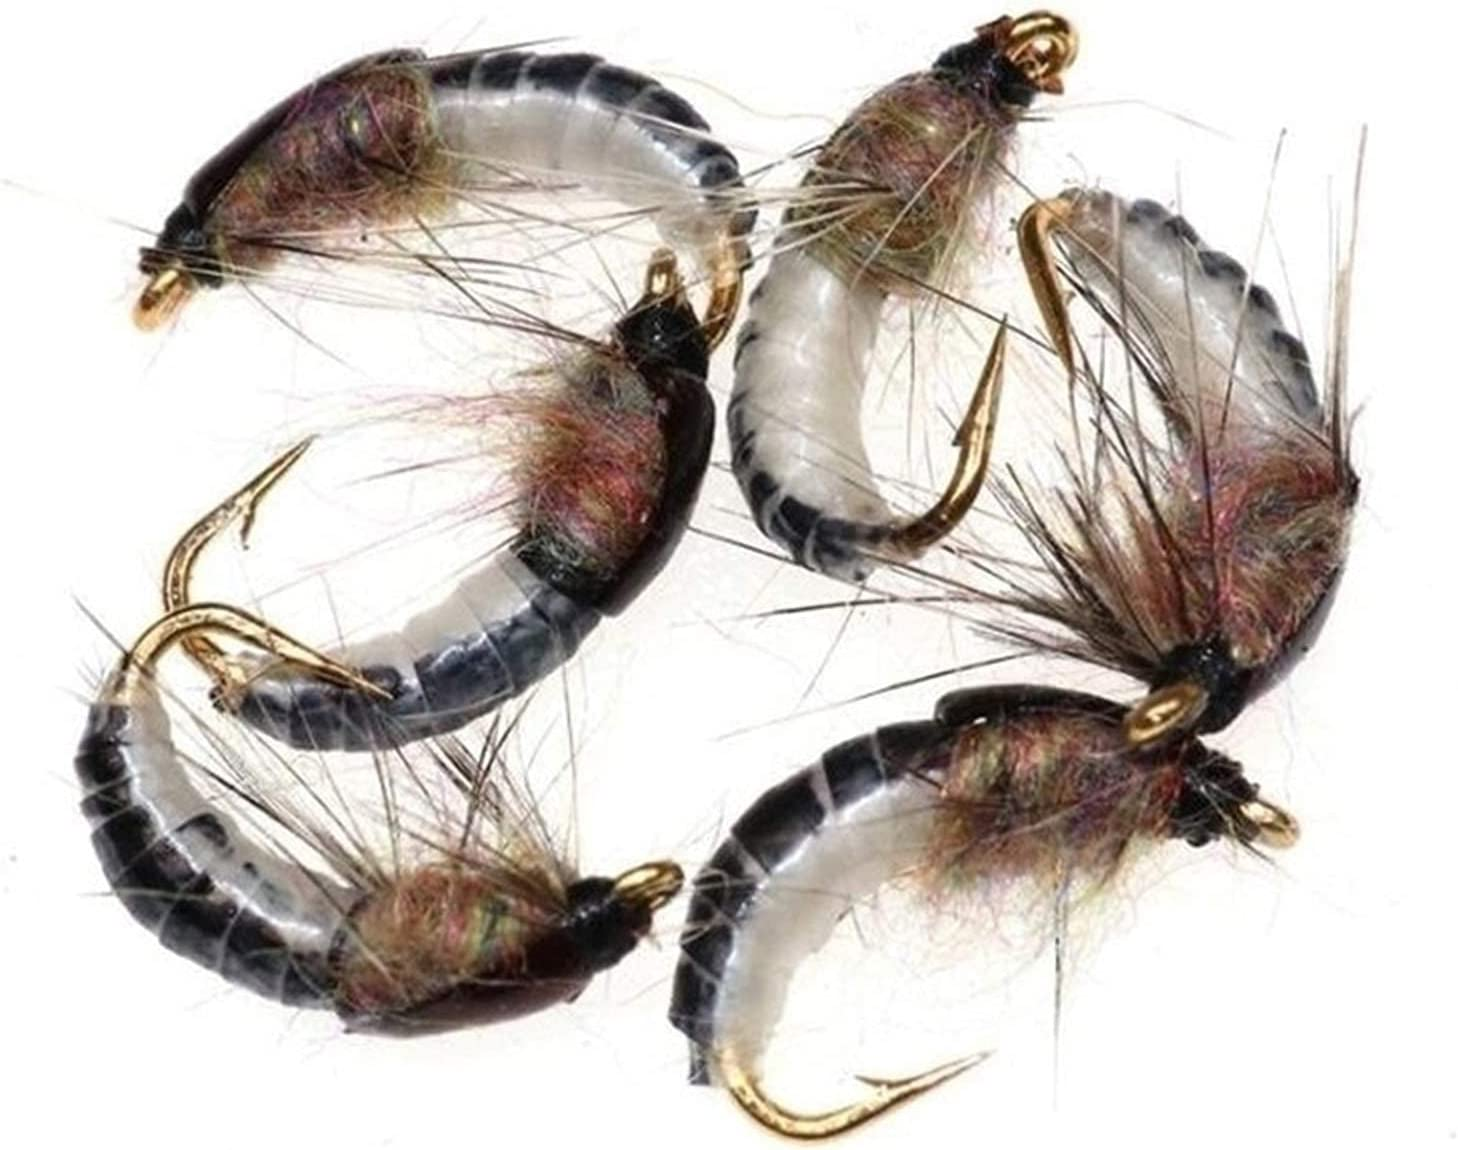 VHNBVHGKGHJ Bait 16 24 32 48Pcs Nymph Direct store for Scud Fly Realistic Tr Year-end annual account